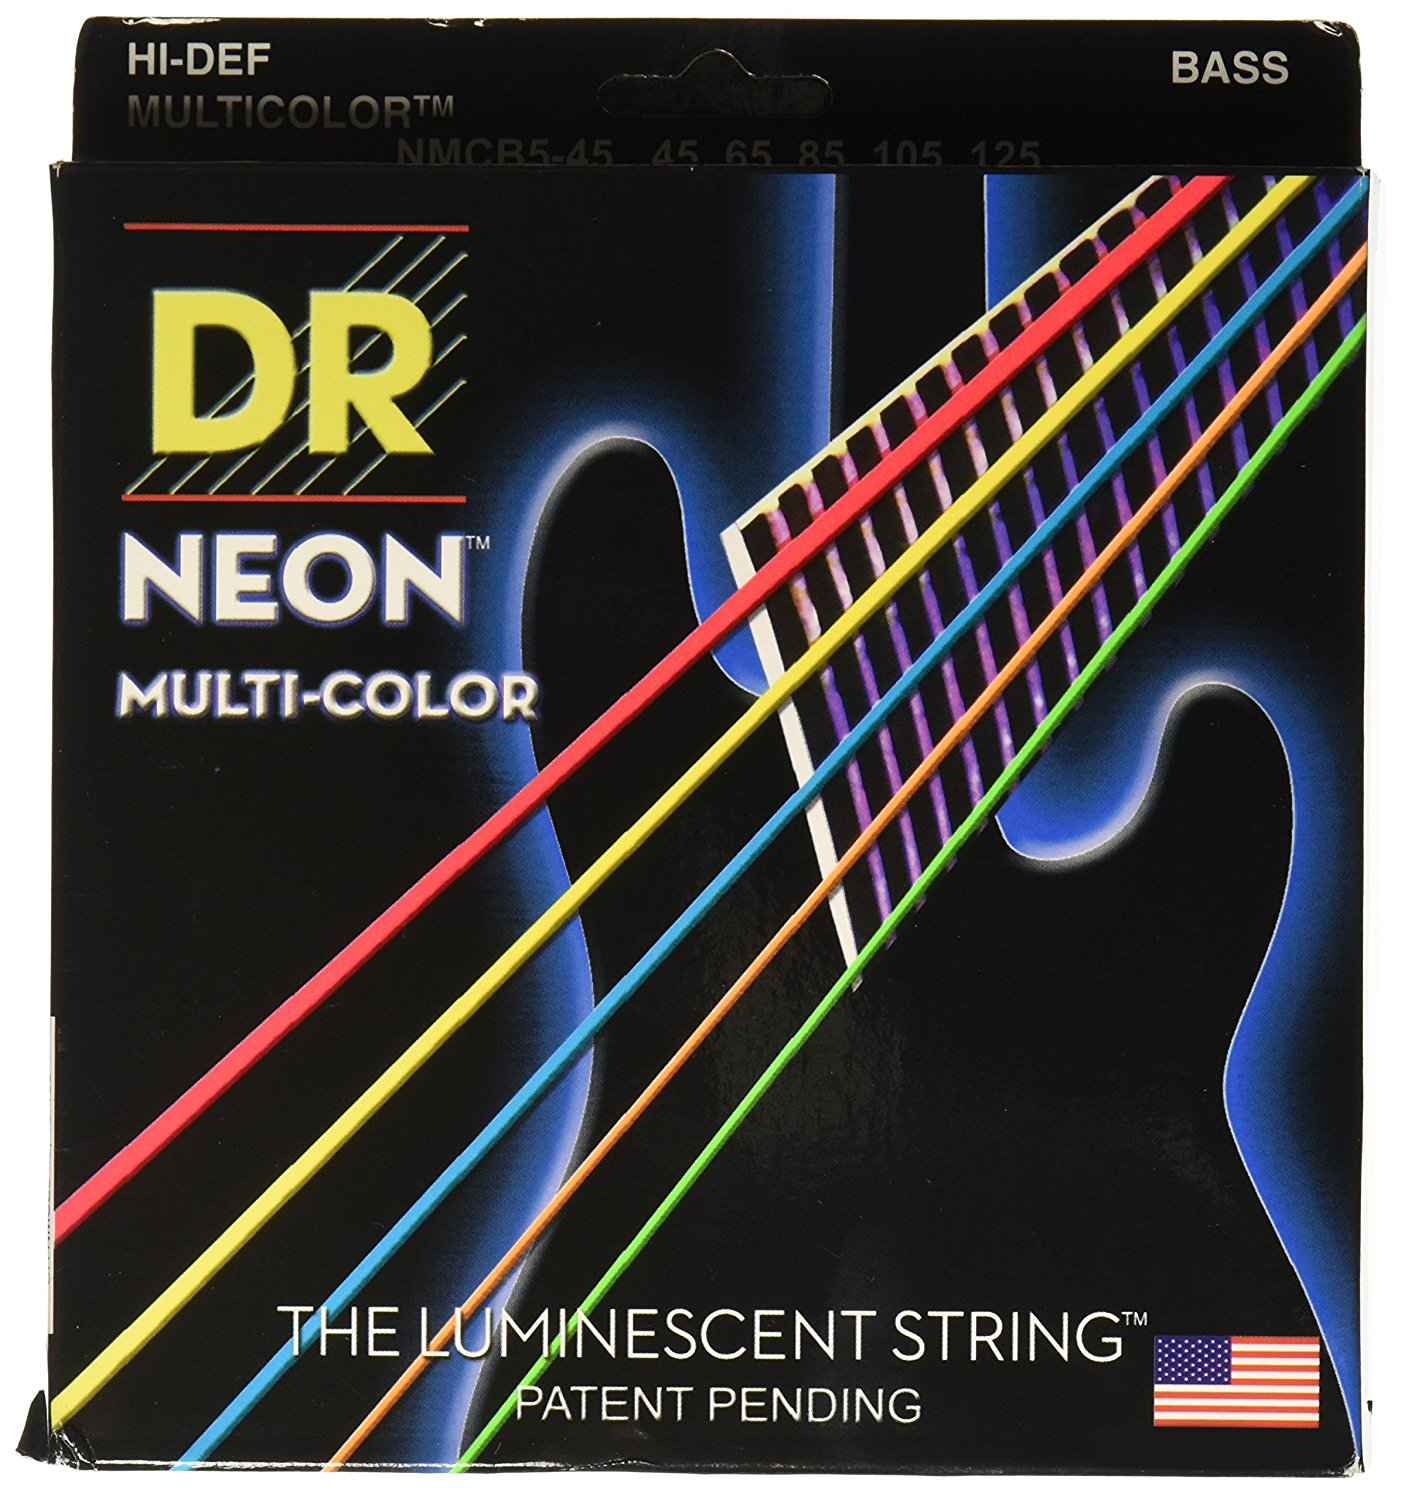 DR Strings NMCB5 45 DR NEON 5 String Bass Guitar Strings, Medium, Multi Color 45 125, and 7 More Color Available